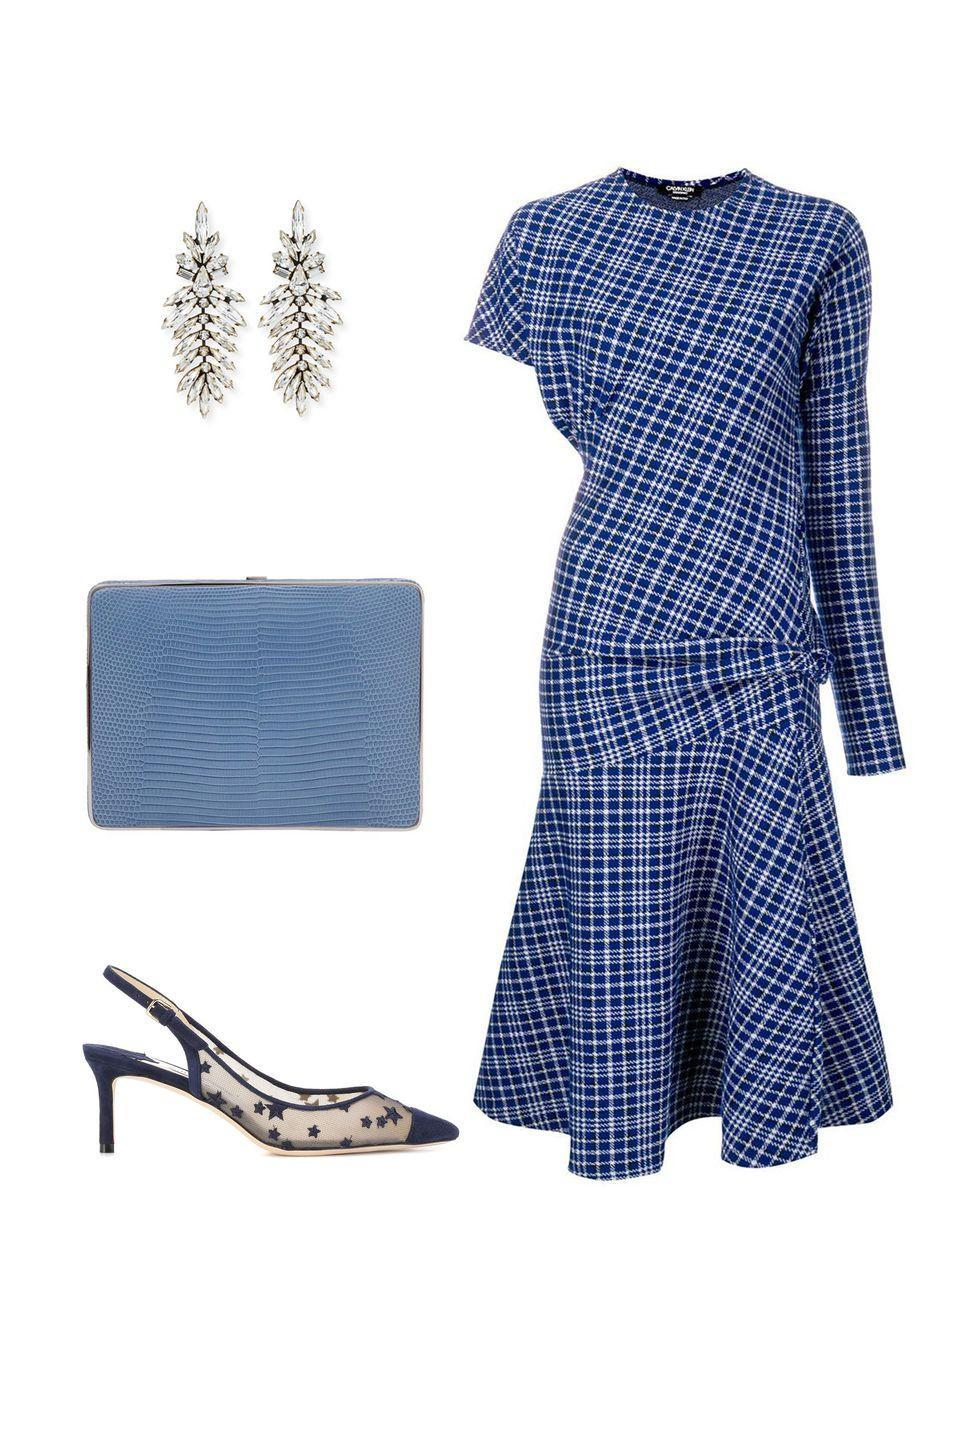 """<p>As the weather gets cooler, embrace bucolic prints and countryside vibes–with a modern twist. Pairing anything tartan with neutral, or cool color, accessories and a bold red lip feels apropos for the season and effortlessly chic.</p><p><em><strong>Calvin Klein</strong> asymmetric dress, $950, <a rel=""""nofollow noopener"""" href=""""https://shop.harpersbazaar.com/designers/calvin-klein-205w39nyc/blue-asymmetric-dress-27234.html"""" target=""""_blank"""" data-ylk=""""slk:shopBAZAAR.com"""" class=""""link rapid-noclick-resp"""">shopBAZAAR.com</a>,; <strong>Hunting Season</strong> clutch, $1,395, <a rel=""""nofollow noopener"""" href=""""https://shop.harpersbazaar.com/designers/hunting-season/blue-square-compact-lizard-clutch-bag-26826.html"""" target=""""_blank"""" data-ylk=""""slk:shopBAZAAR.com"""" class=""""link rapid-noclick-resp"""">shopBAZAAR.com</a>; <strong>Jimmy Choo</strong> slingbacks, $680, <a rel=""""nofollow noopener"""" href=""""https://www.mytheresa.com/en-de/jimmy-choo-erin-60-suede-slingback-pumps-995610.html?catref=category"""" target=""""_blank"""" data-ylk=""""slk:mytheresa.com"""" class=""""link rapid-noclick-resp"""">mytheresa.com</a>; <strong>Auden</strong> earrings, $448, <a rel=""""nofollow noopener"""" href=""""https://www.bergdorfgoodman.com/Auden-Emerson-Marquis-Crystal-Drop-Earrings-Earrings/prod133280011_cat203401__/p.prod?icid=&searchType=EndecaDrivenCat&rte=%252Fcategory.jsp%253FitemId%253Dcat203401%2526pageSize%253D120%2526No%253D0%2526refinements%253D&eItemId=prod133280011&cmCat=product"""" target=""""_blank"""" data-ylk=""""slk:bergdorfgoodman.com"""" class=""""link rapid-noclick-resp"""">bergdorfgoodman.com</a>.</em></p>"""